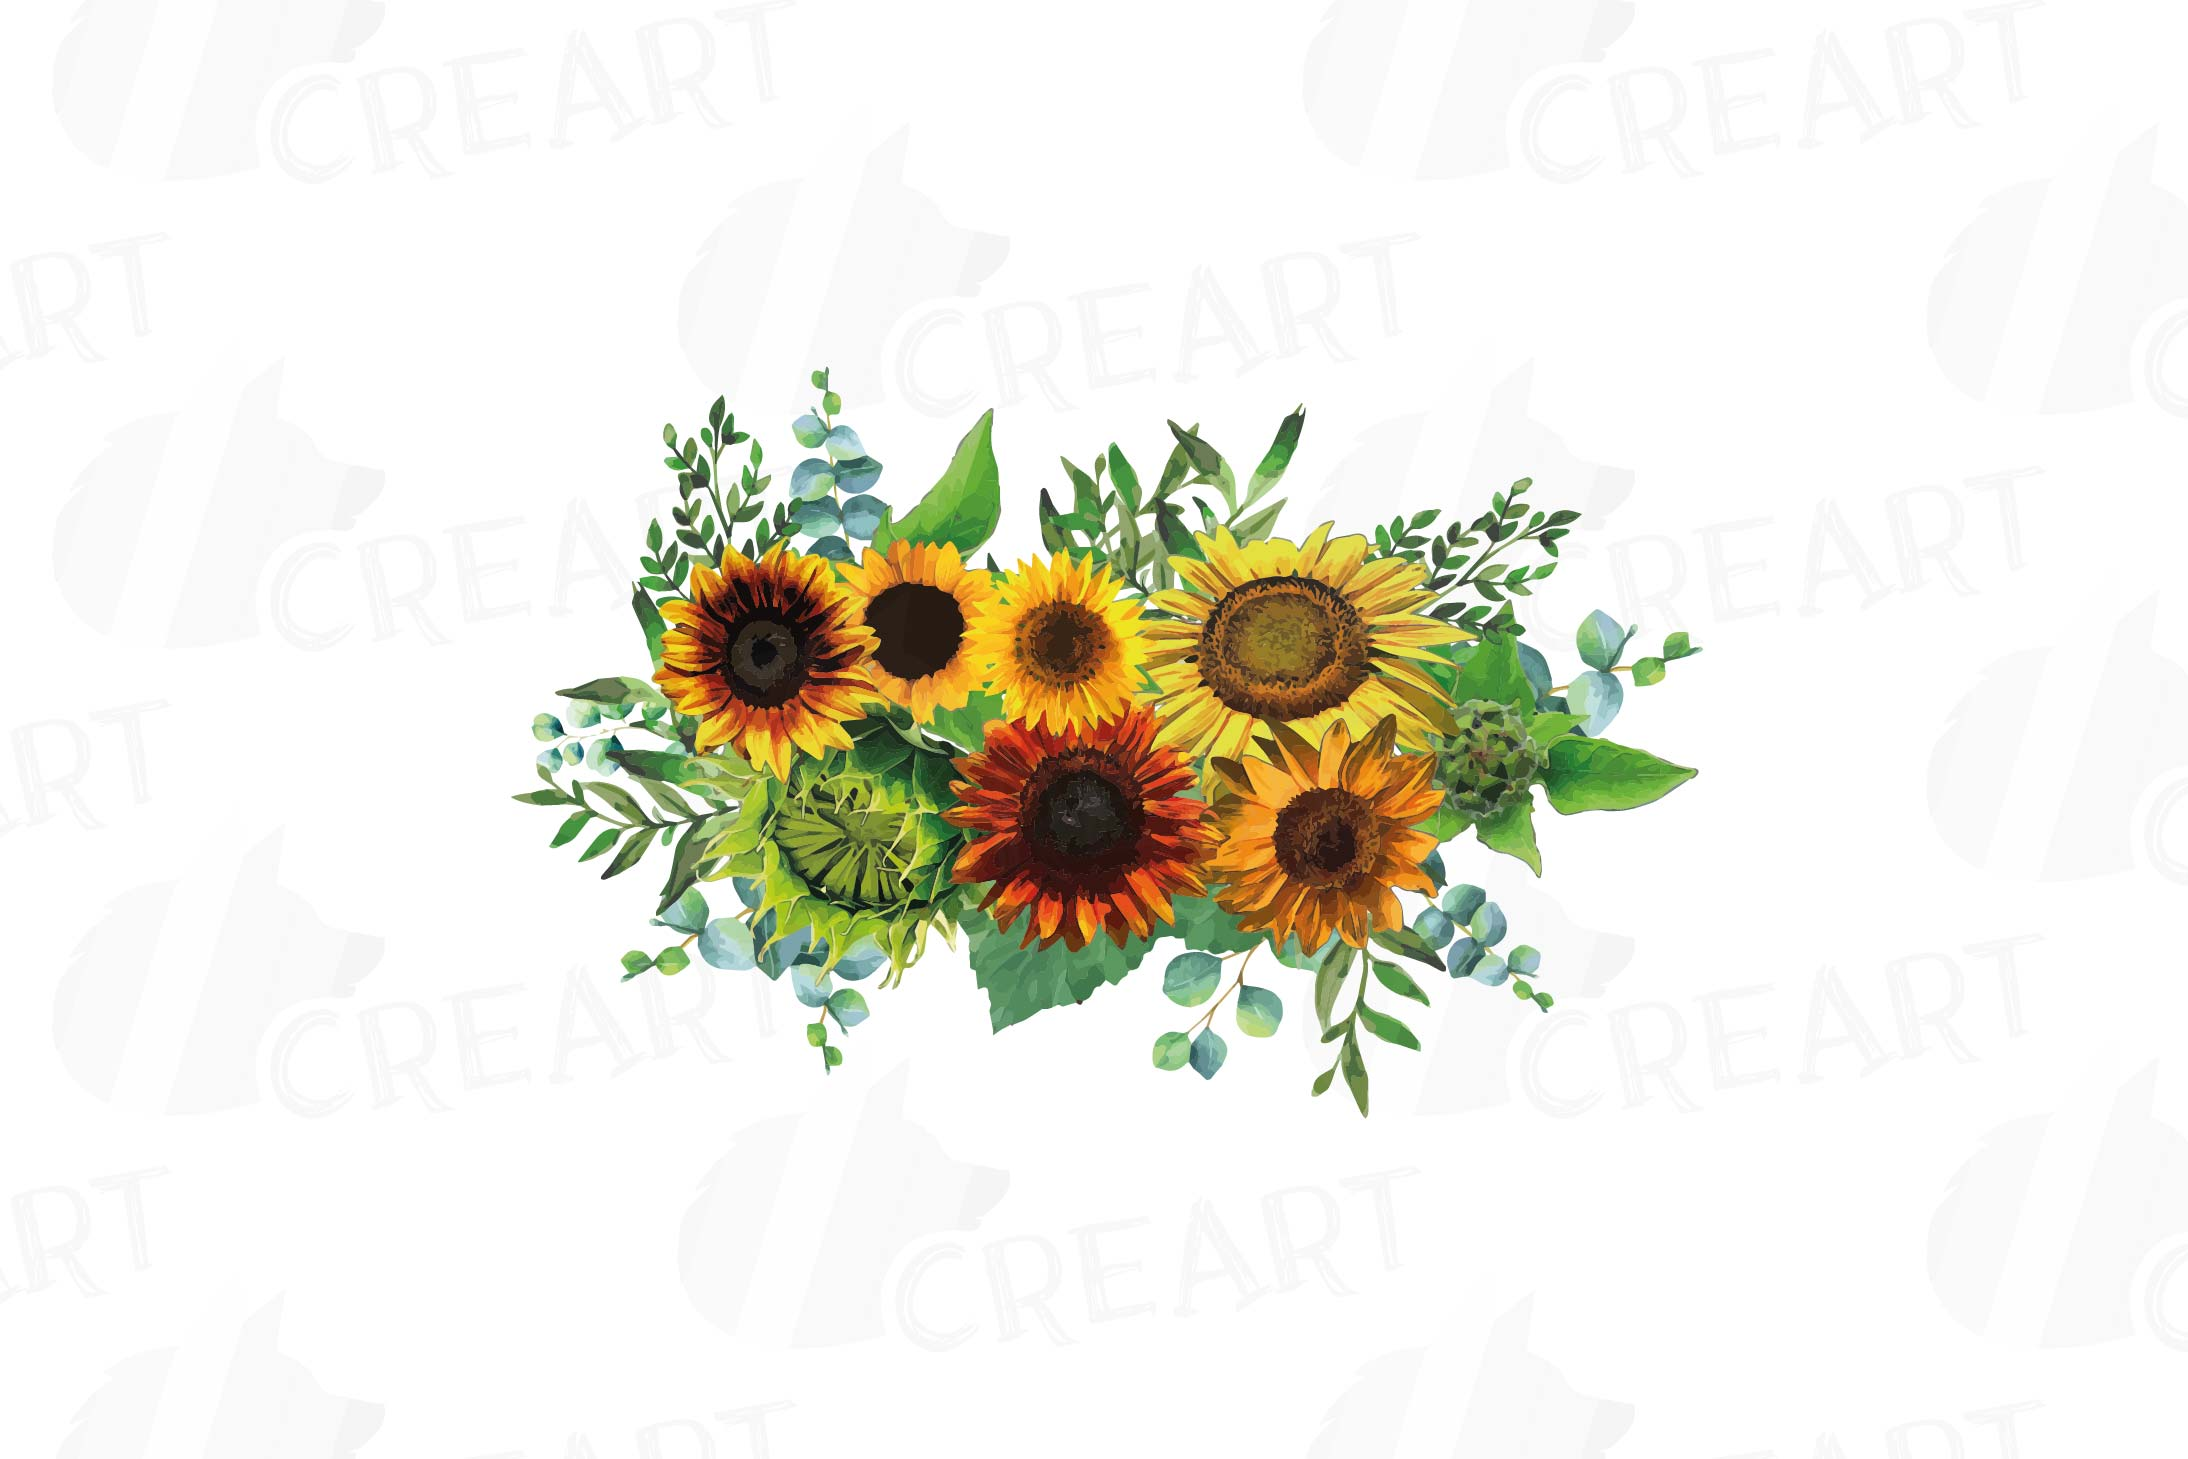 Watercolor sunflower bouquets and design elements example image 6